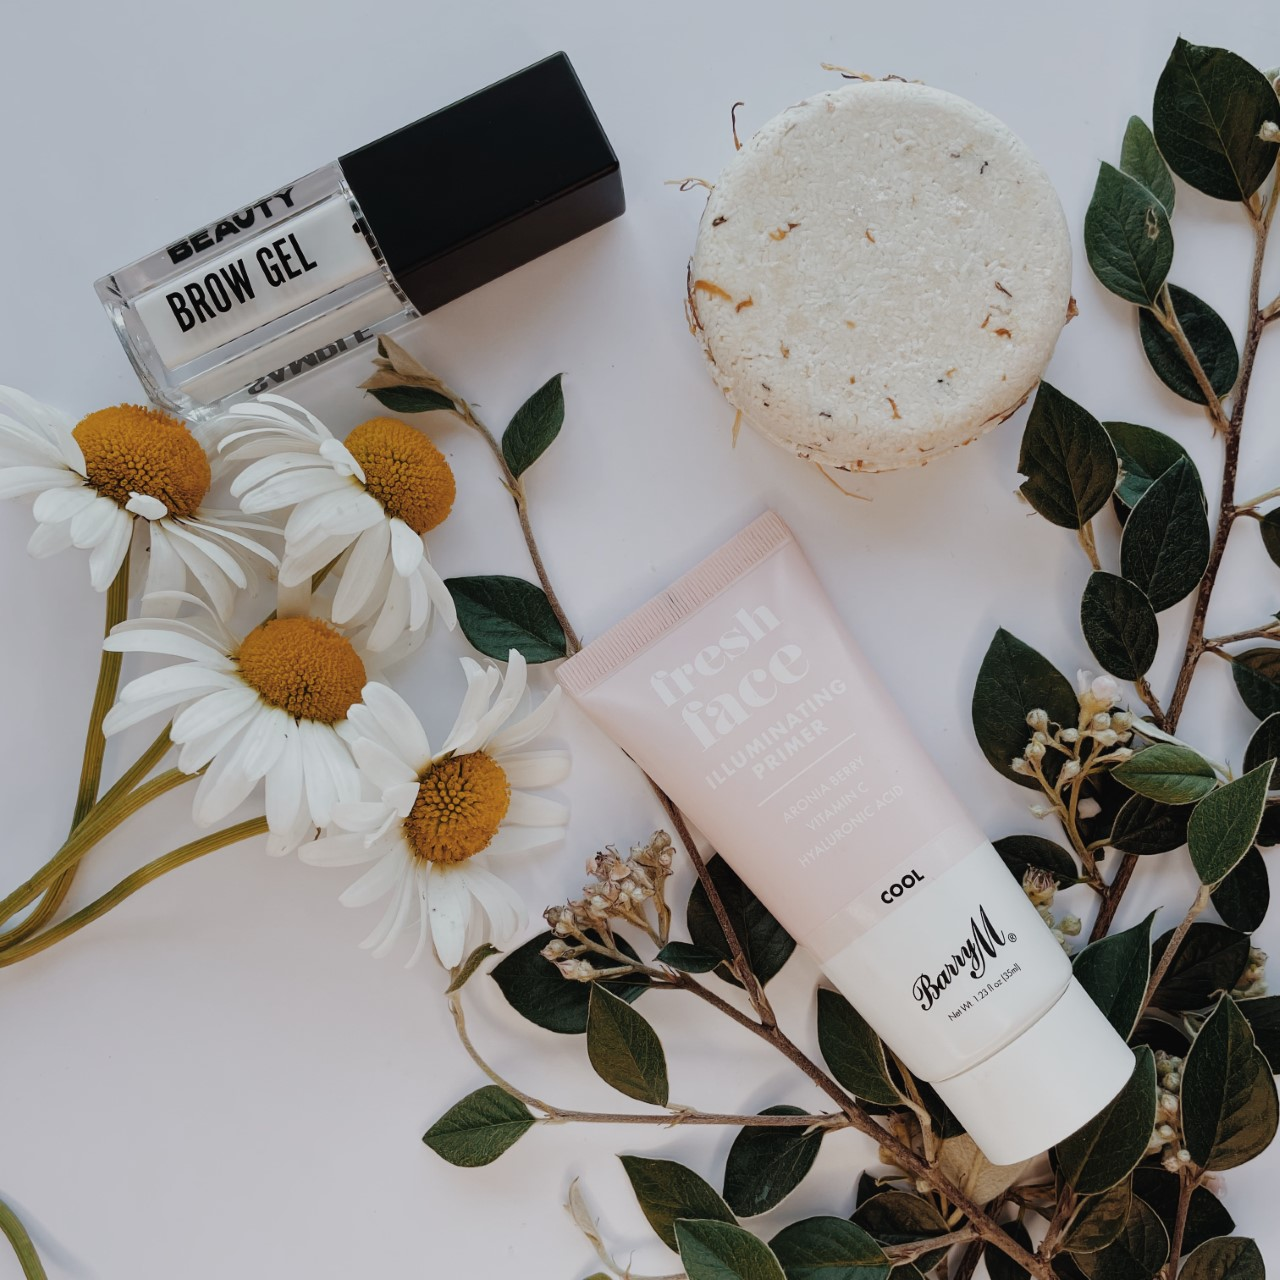 three beauty products: shampoo bar, face primer and eyebrow mascara in neutral colours all sit against a white background. A bunch of daisies peaks across from the left, and some leafy branches on the right.